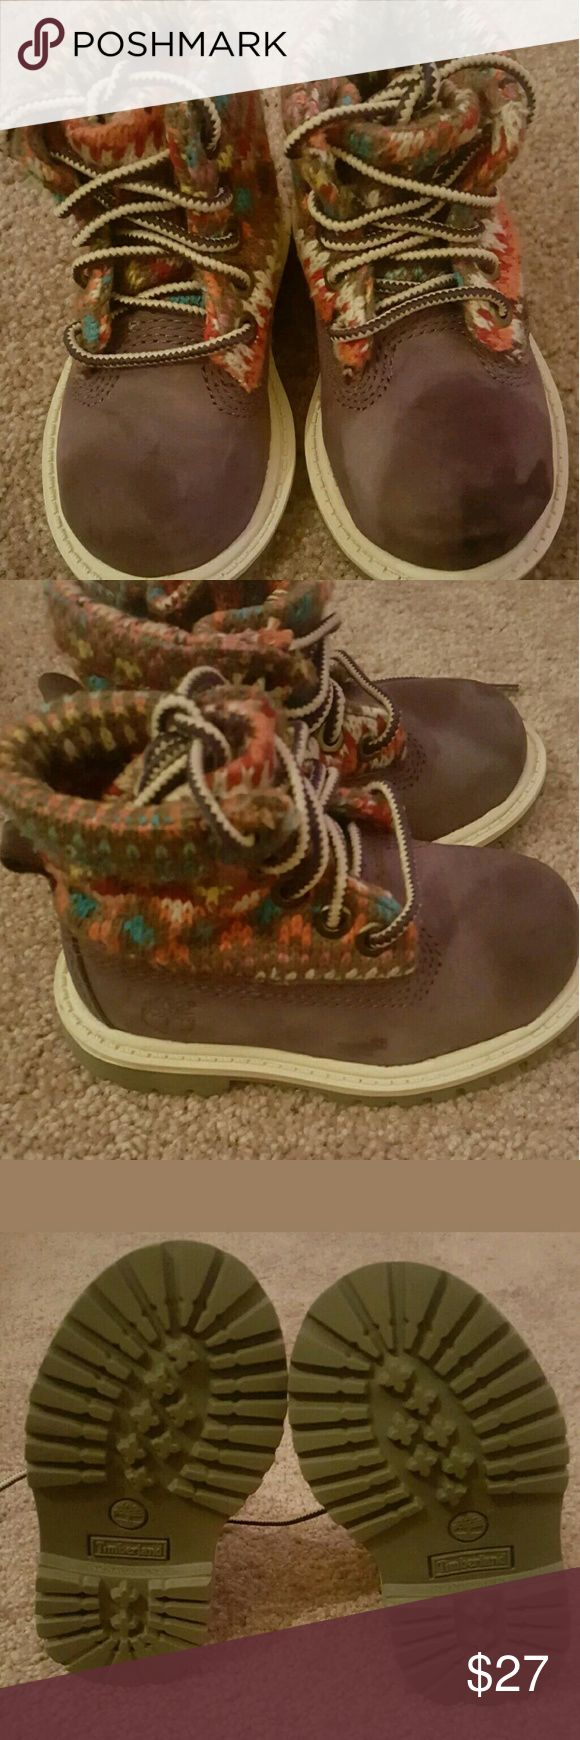 Timberland boots toddler girl Pre owned Flip down high top purple timberland boots for a toddler girl. Overall the condition is okay only worn a few times. On the left boot there is a dark purple mark and a small mark on the left side as well. Will require suede cleaner to remove stains. Size 5c, this boot does have shoe laces. Sold as is, no box included. Timberland Shoes Boots